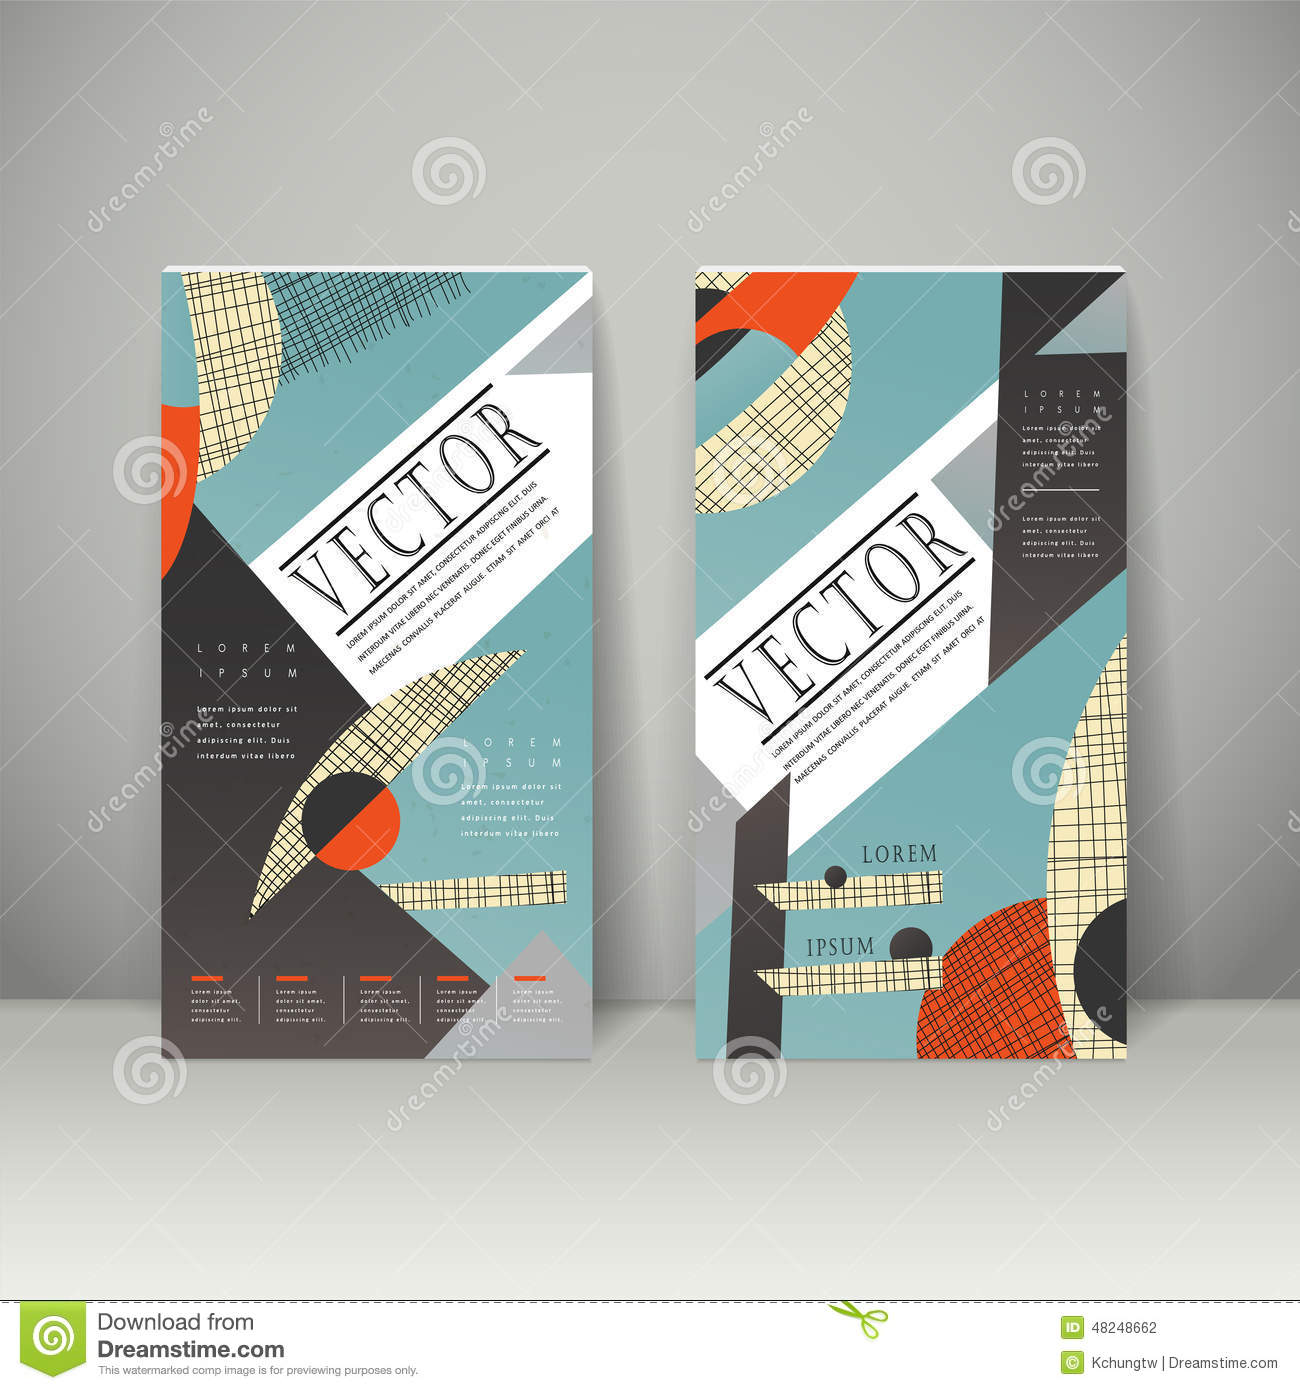 Collage Style Banner Template Design Stock Vector - Image: 48248662